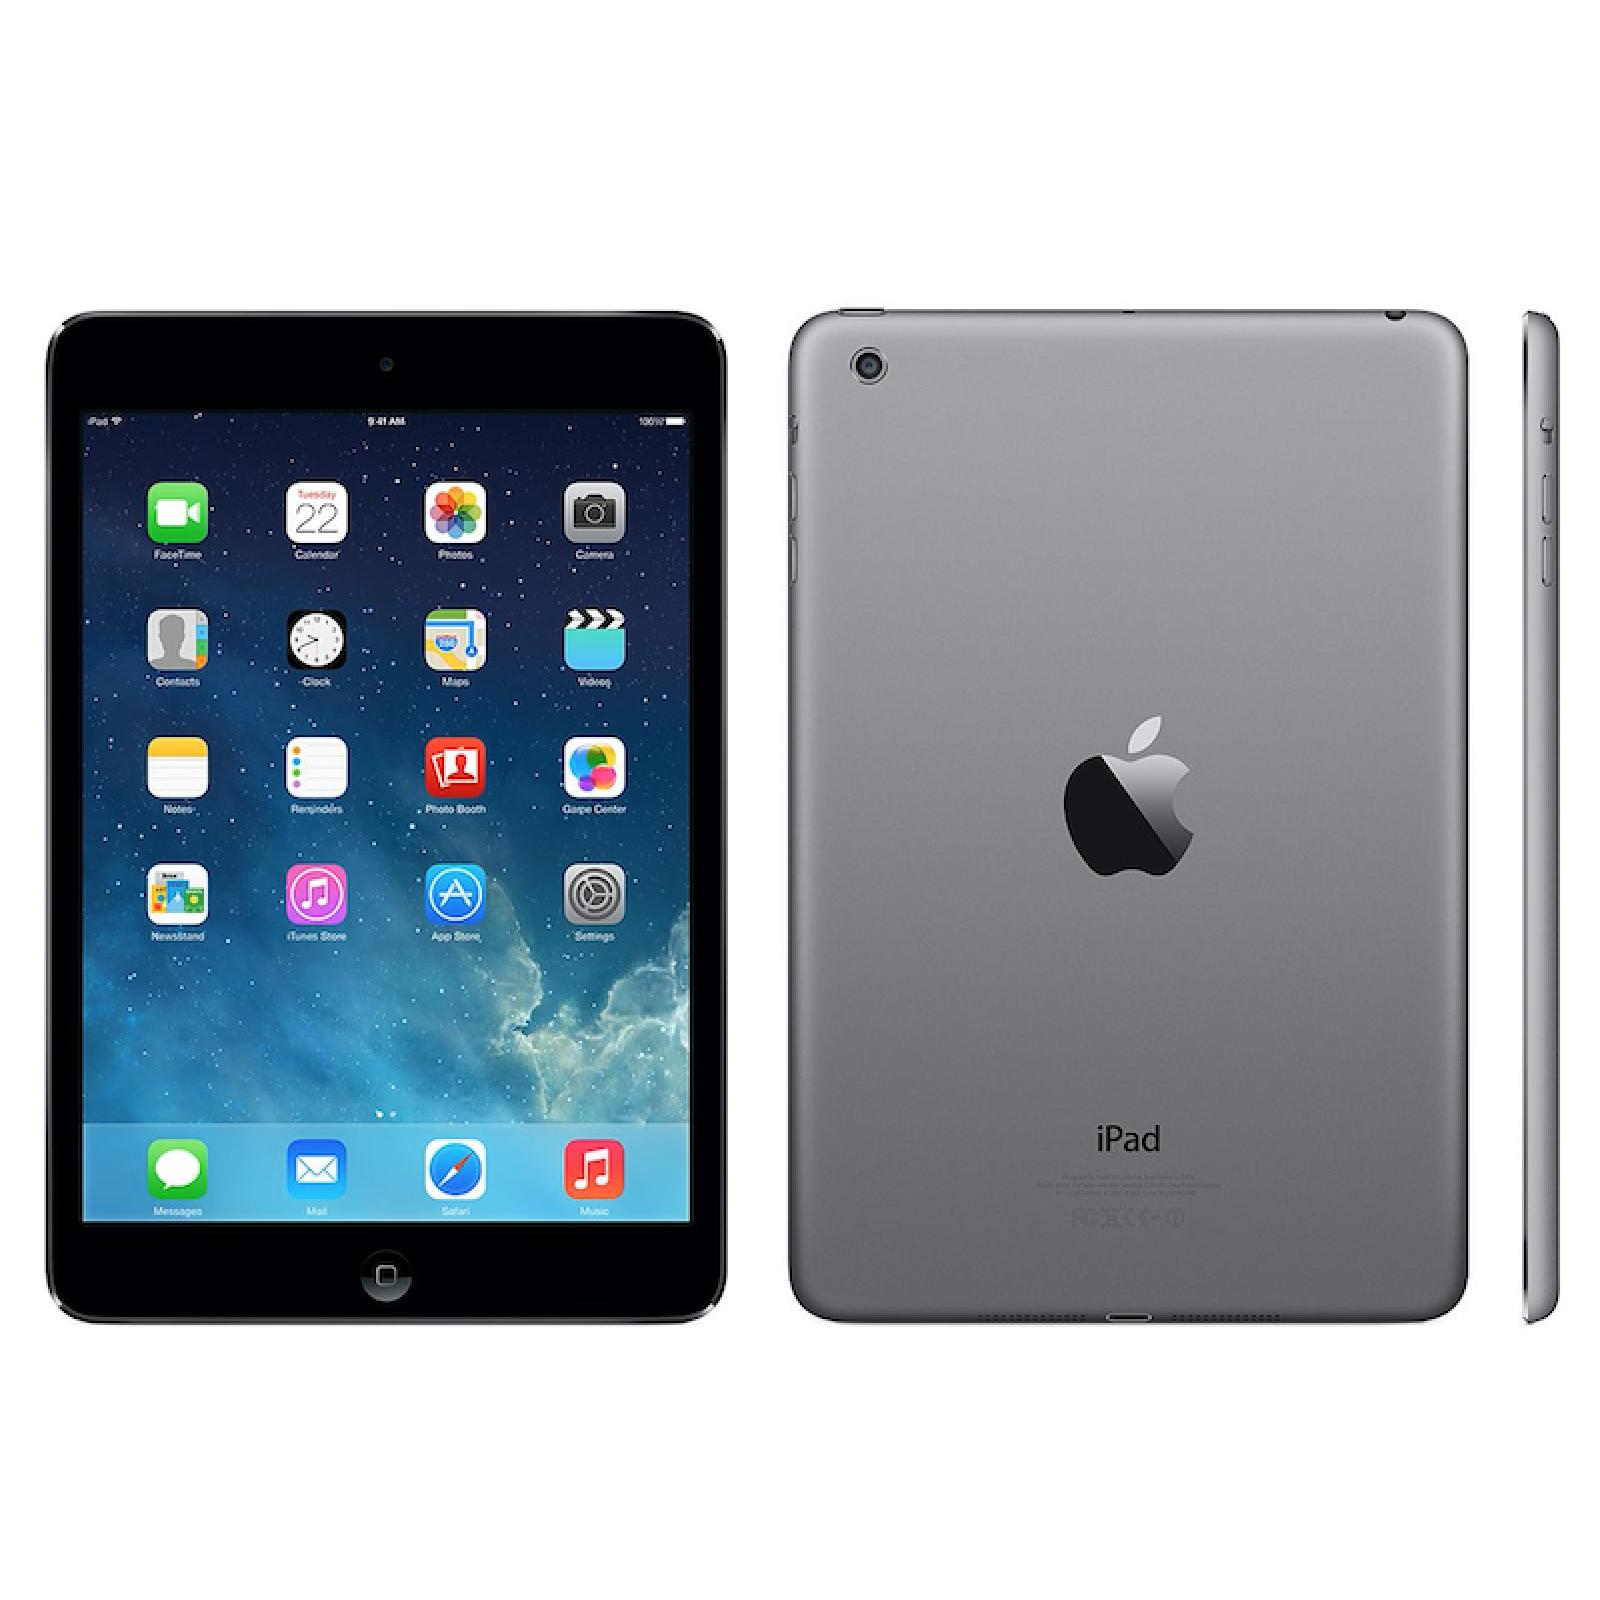 iPad mini 2 32GB - Spacegrau - Wlan